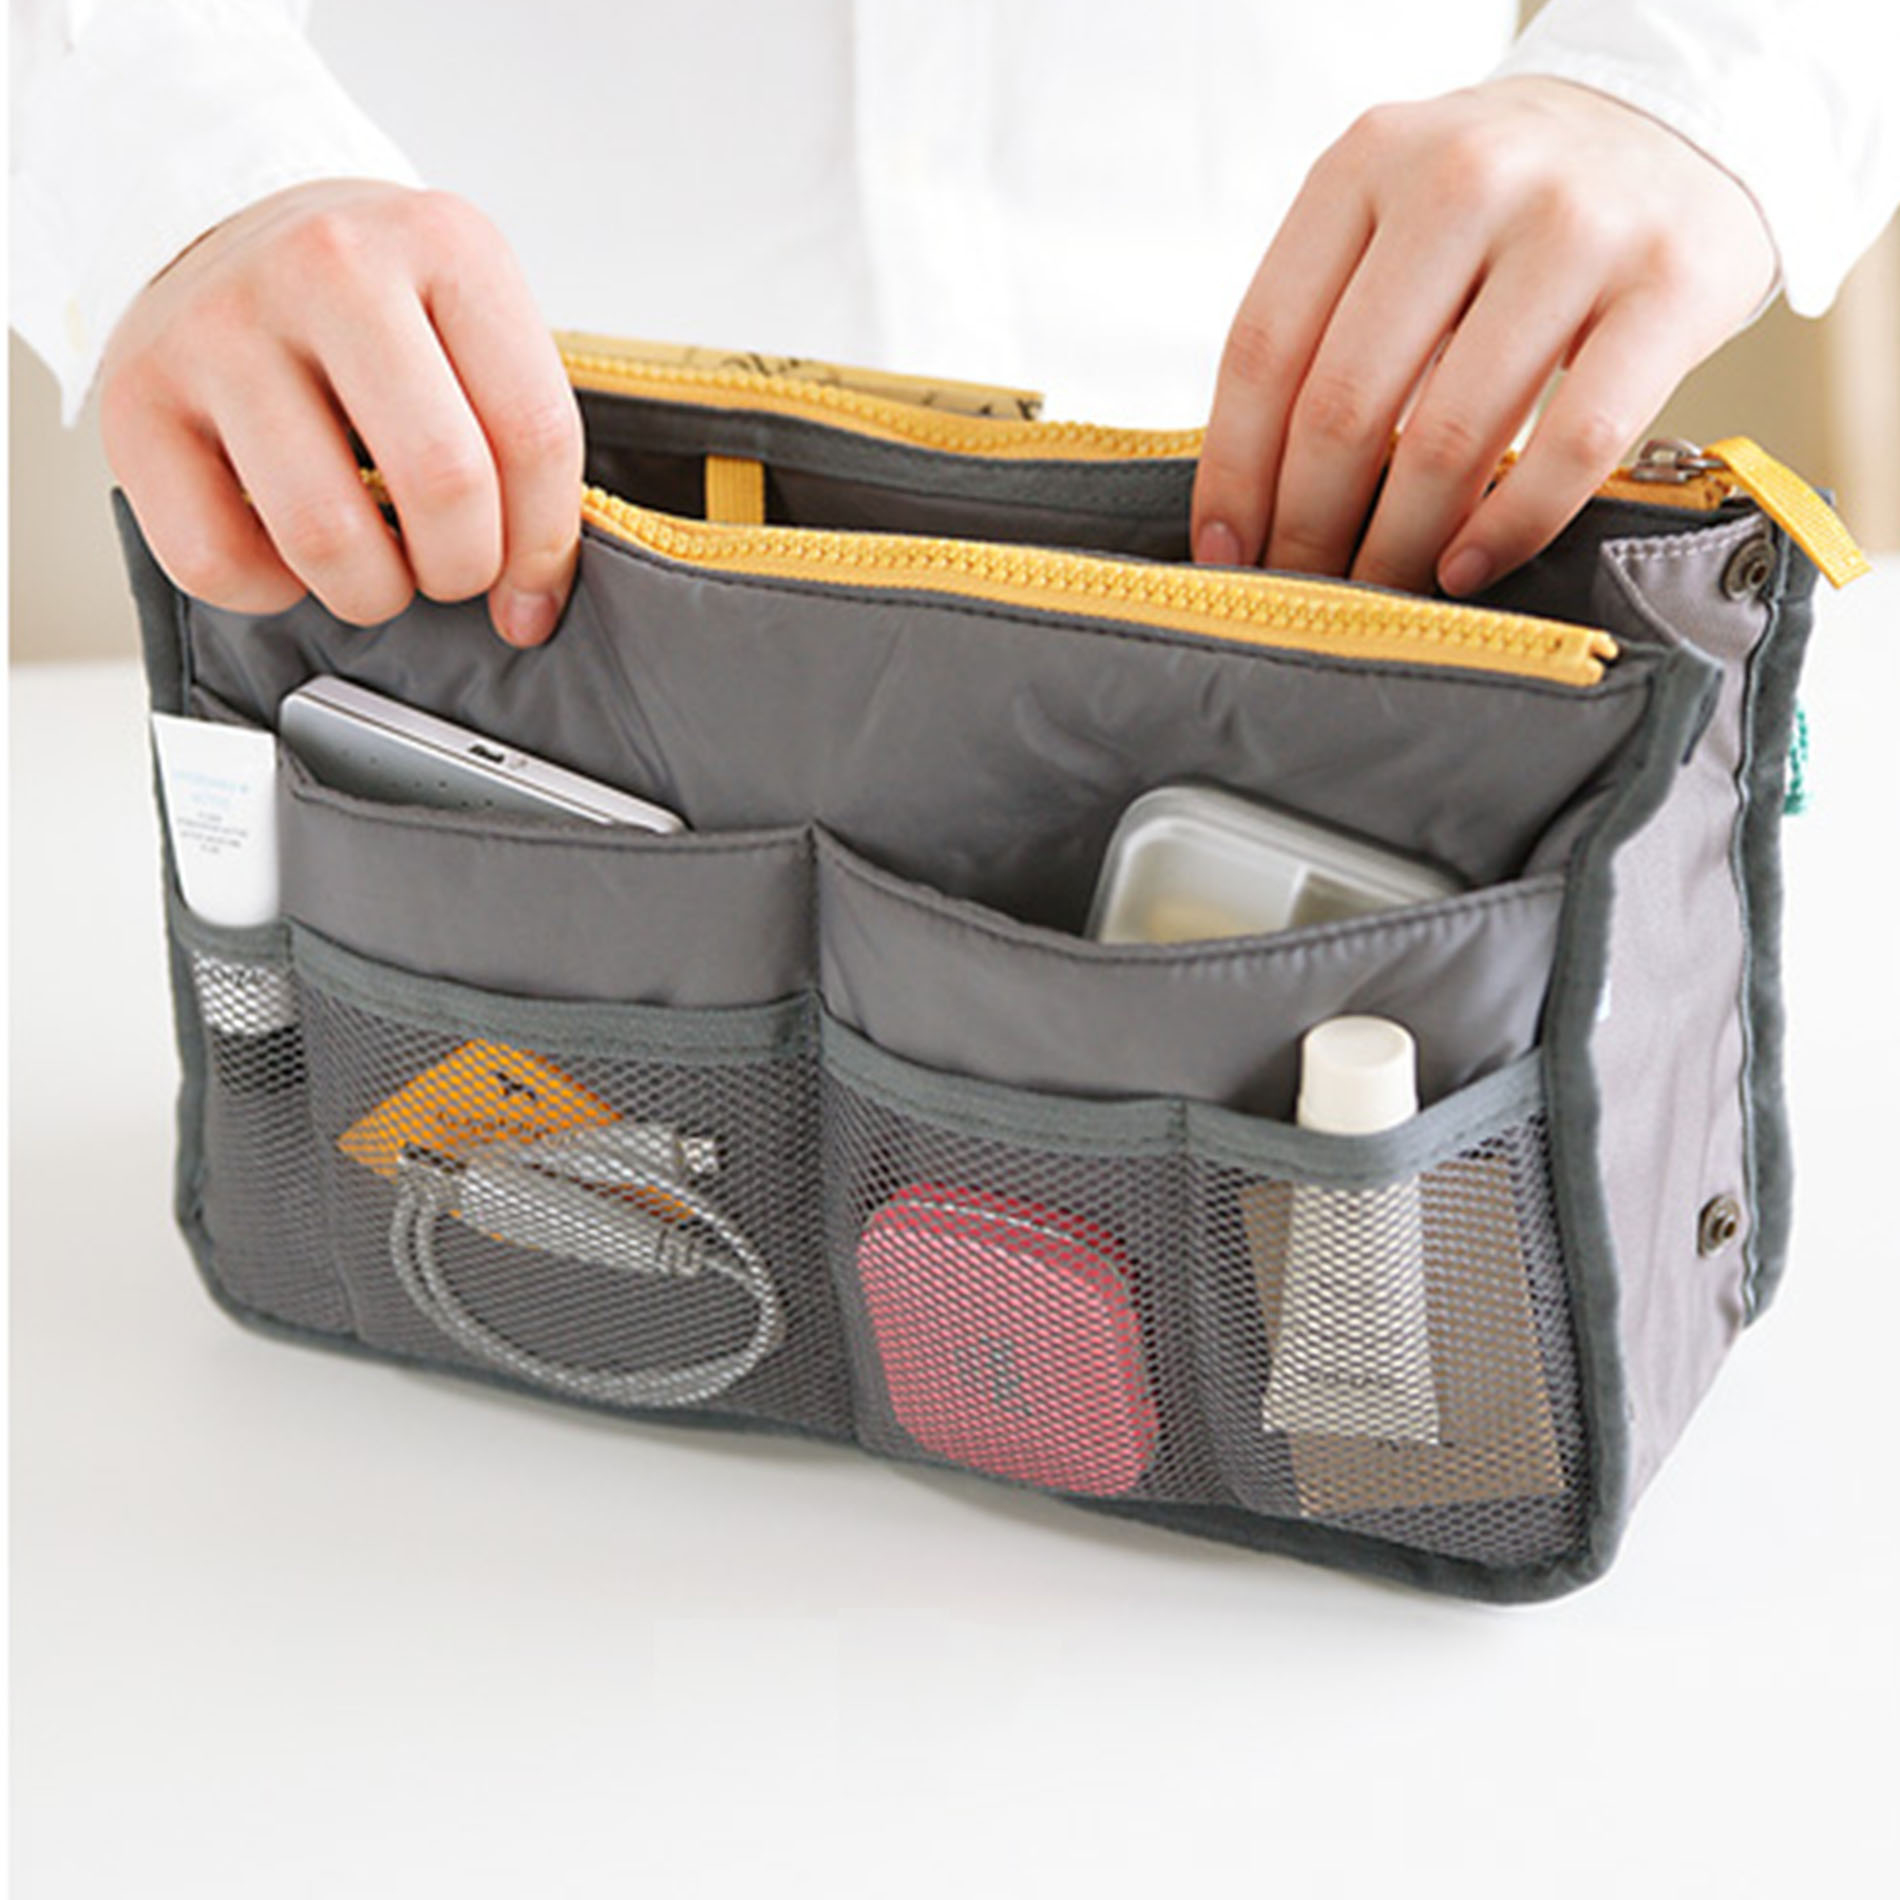 Collapsible Purse Organizer - BLUE (AMARYLL-B869) photo